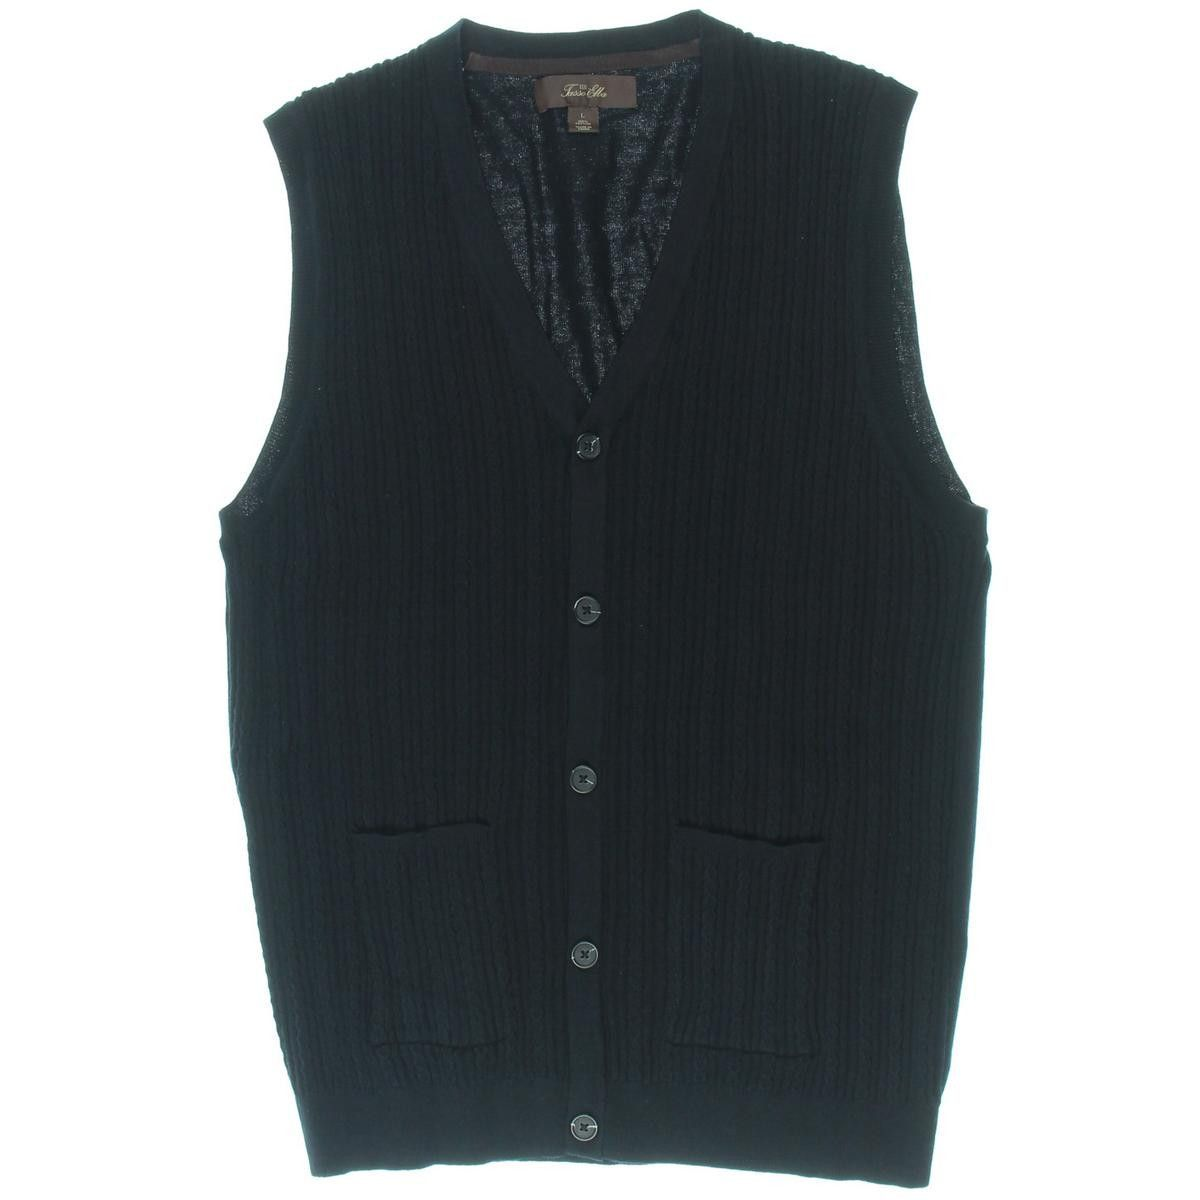 Tasso Elba Mens Button-Down Cable Knit Sweater Vest | Products ...